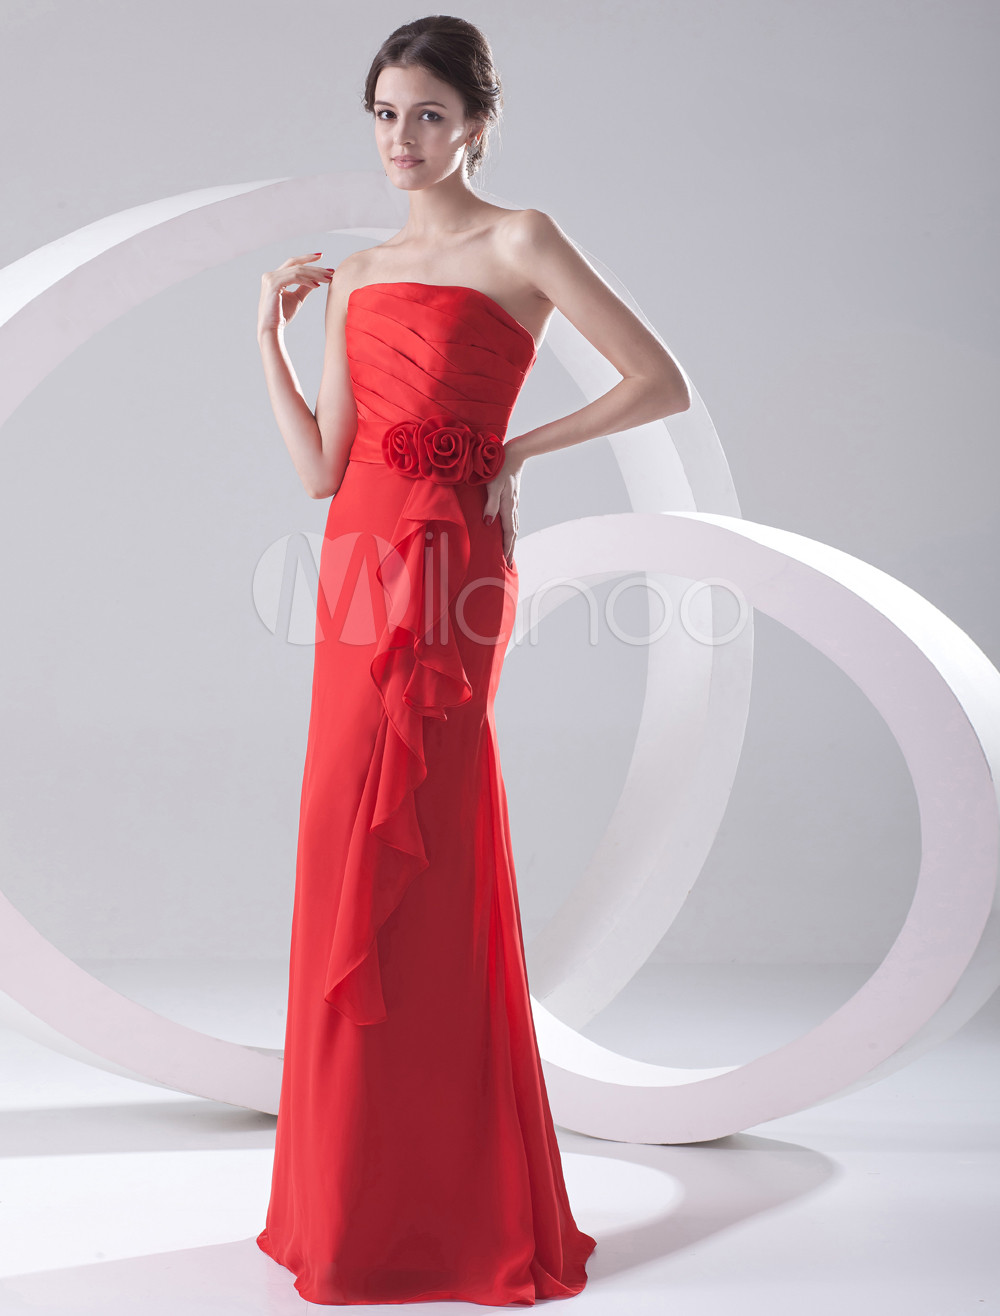 Sheath Red Chiffon Floral Strapless Floor-Length Wedding Bridesmaid Dress